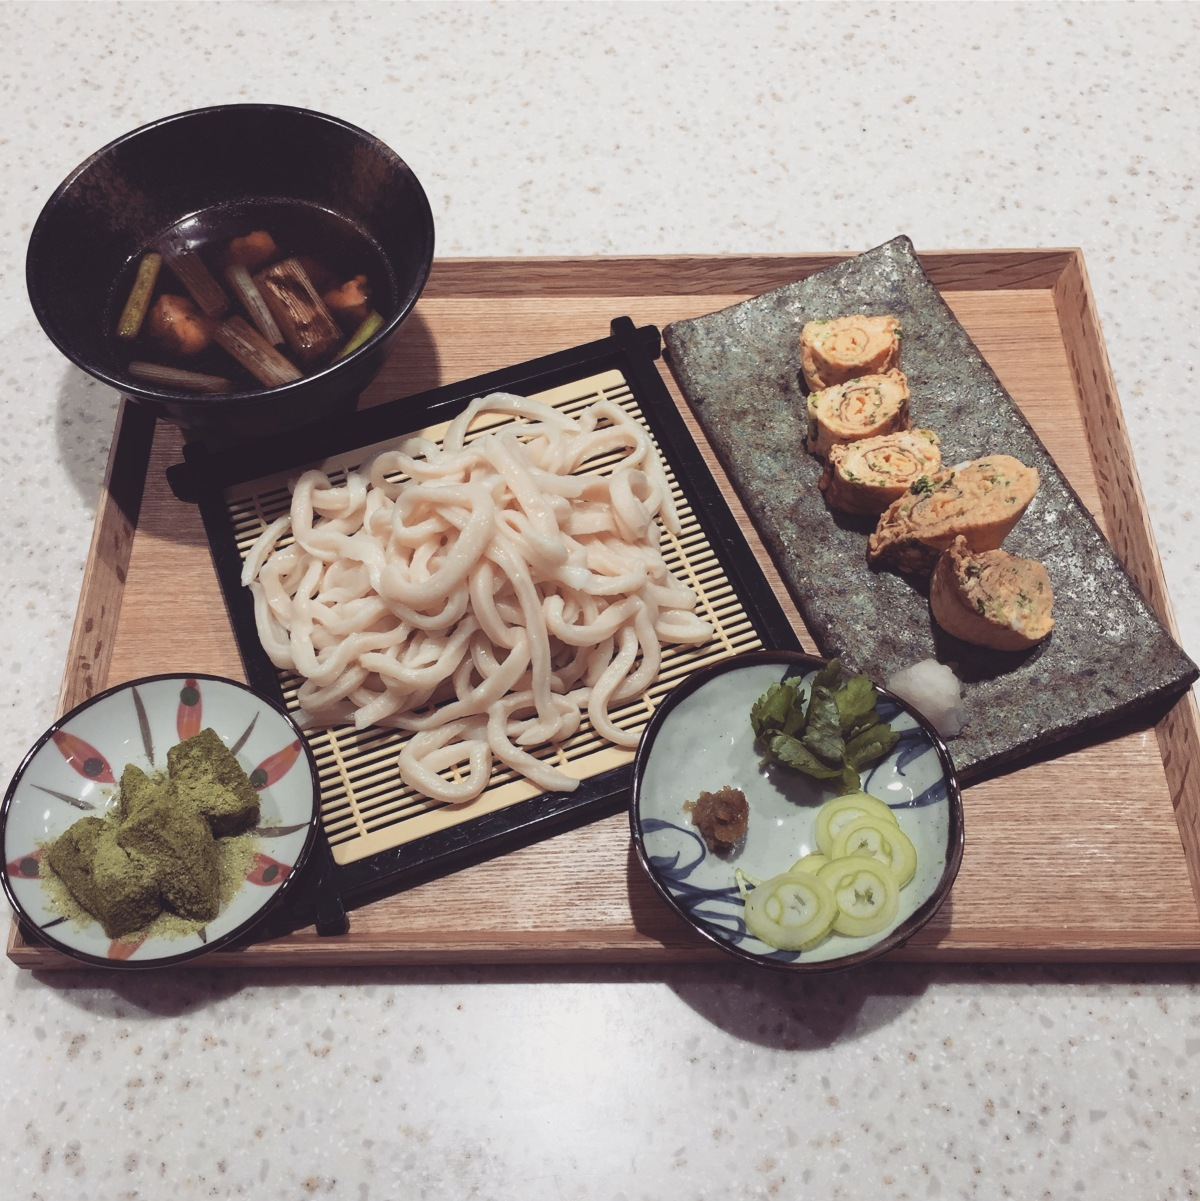 ABC Cooking Studio – Handmade Udon and Variation of Dashi